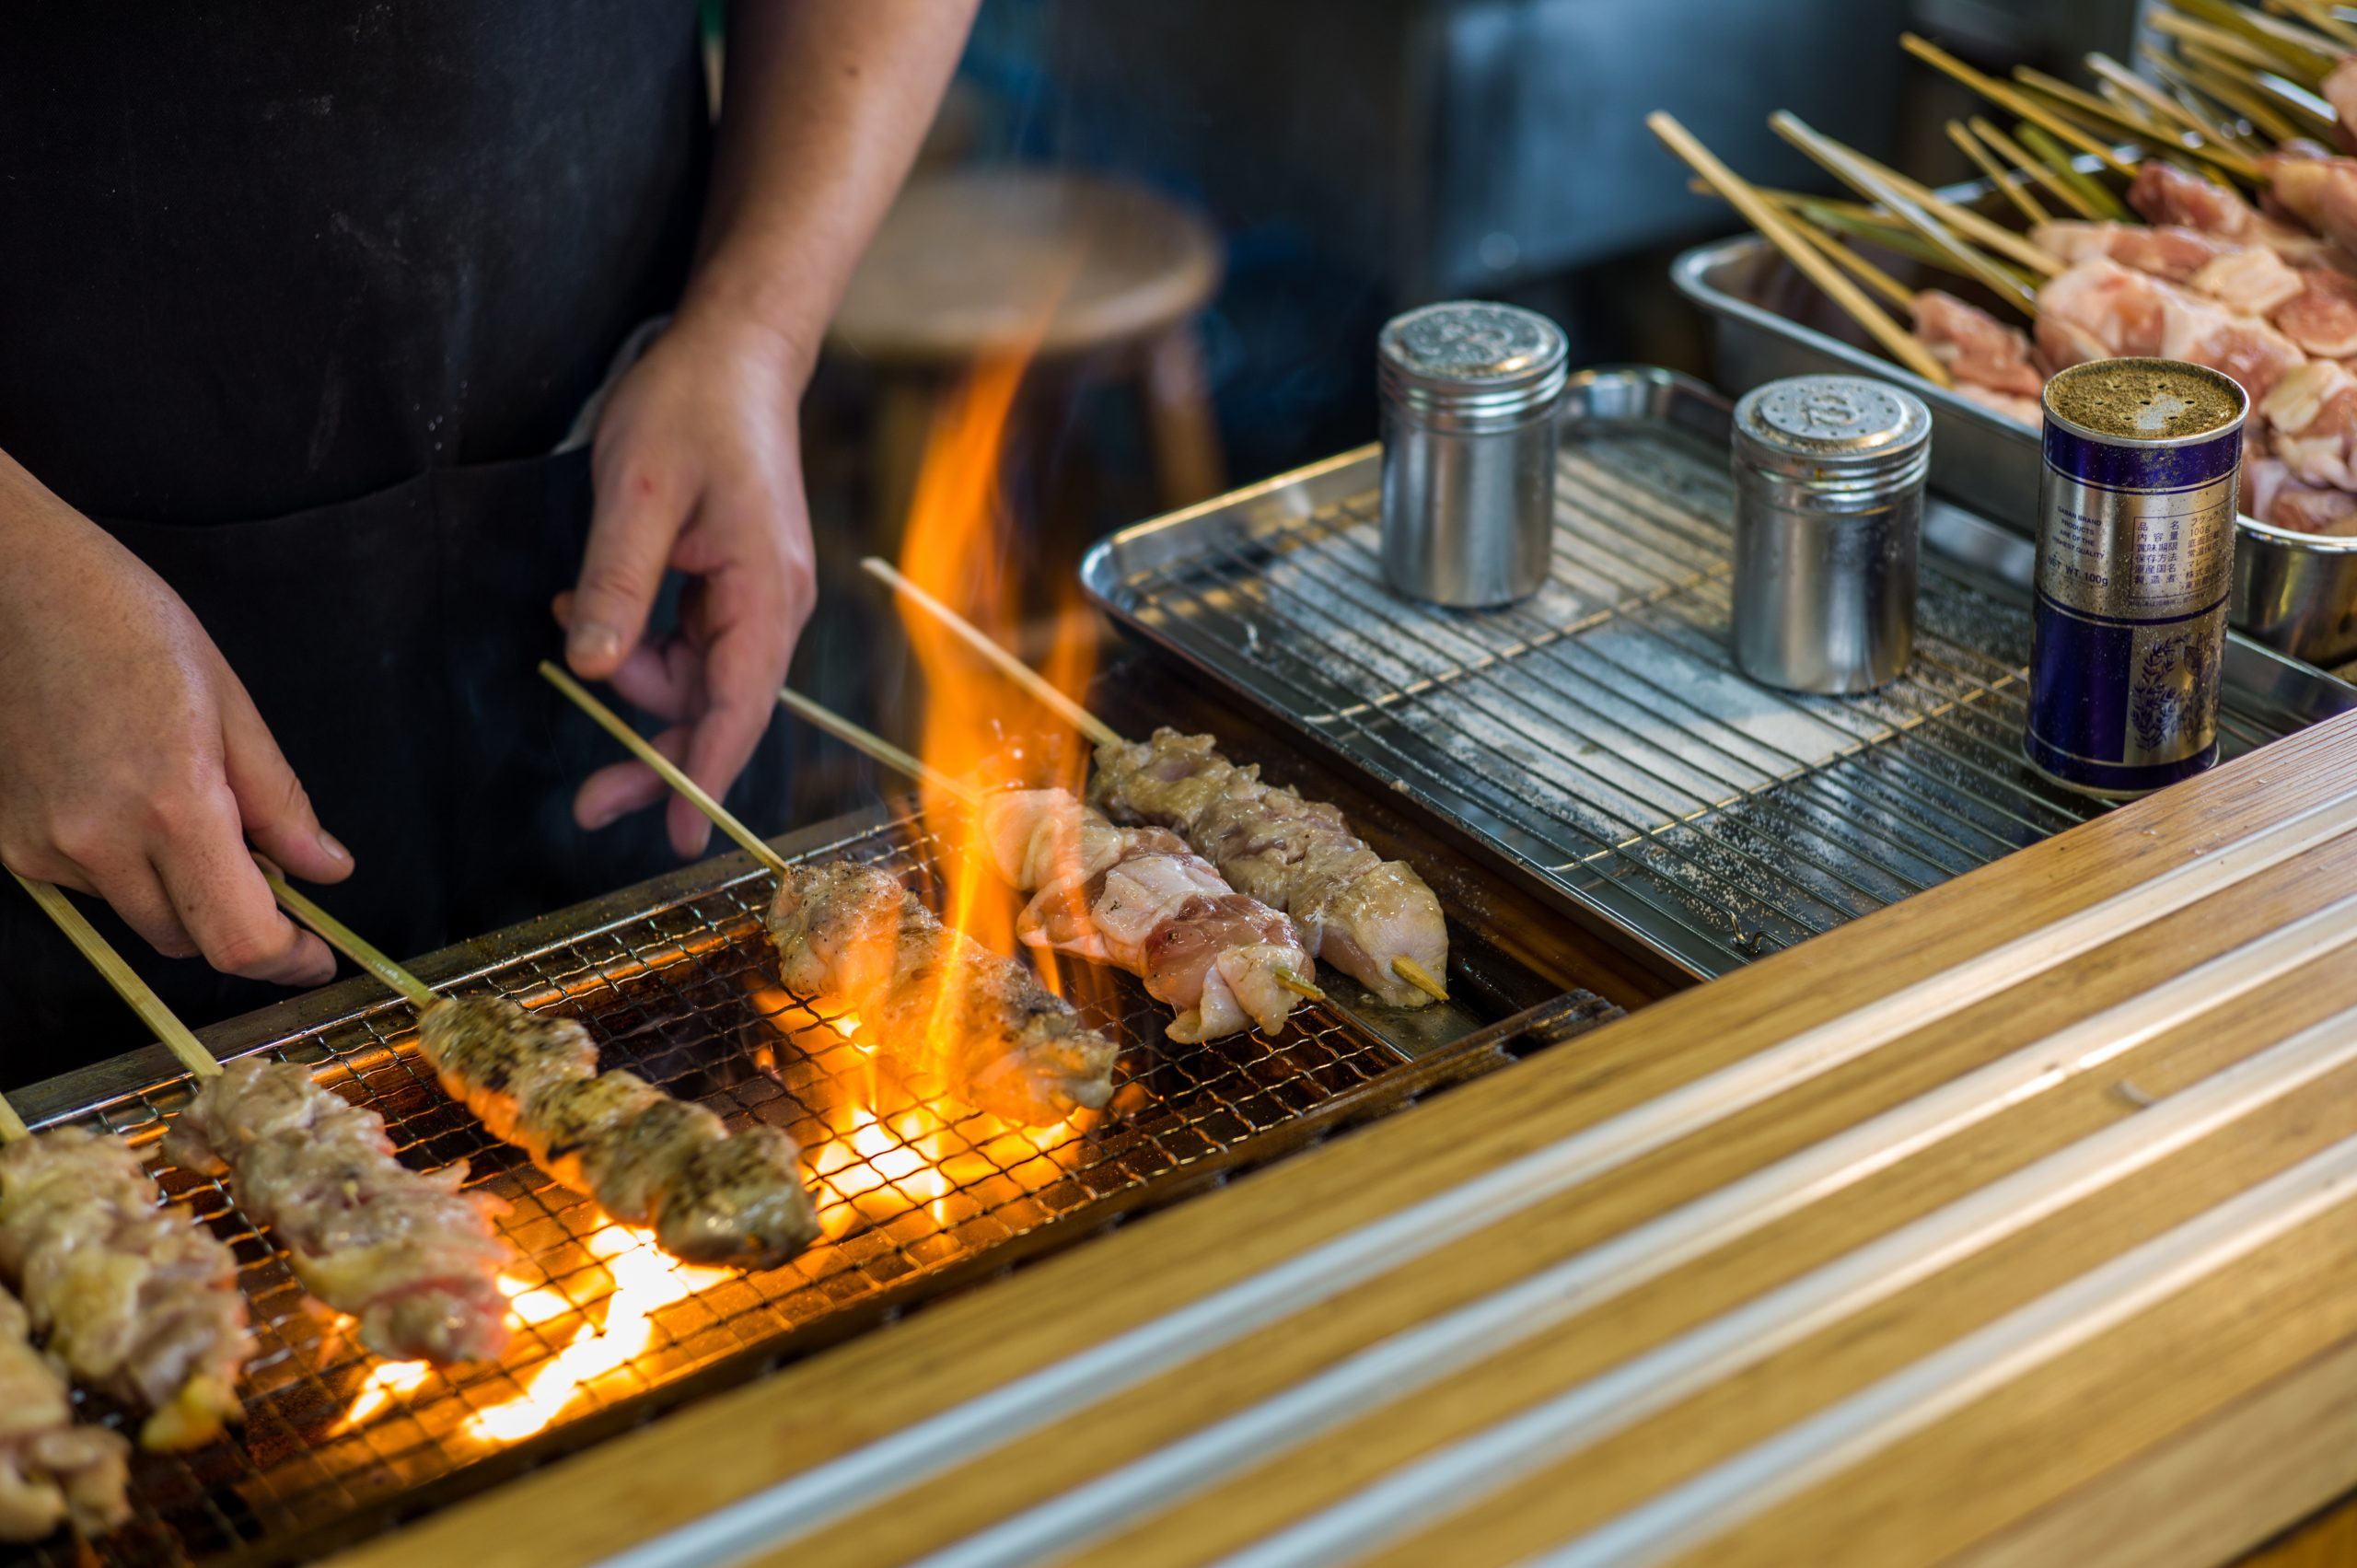 Taste The Delicious Yakitori On Your Osaka Market Tour And Cooking Class